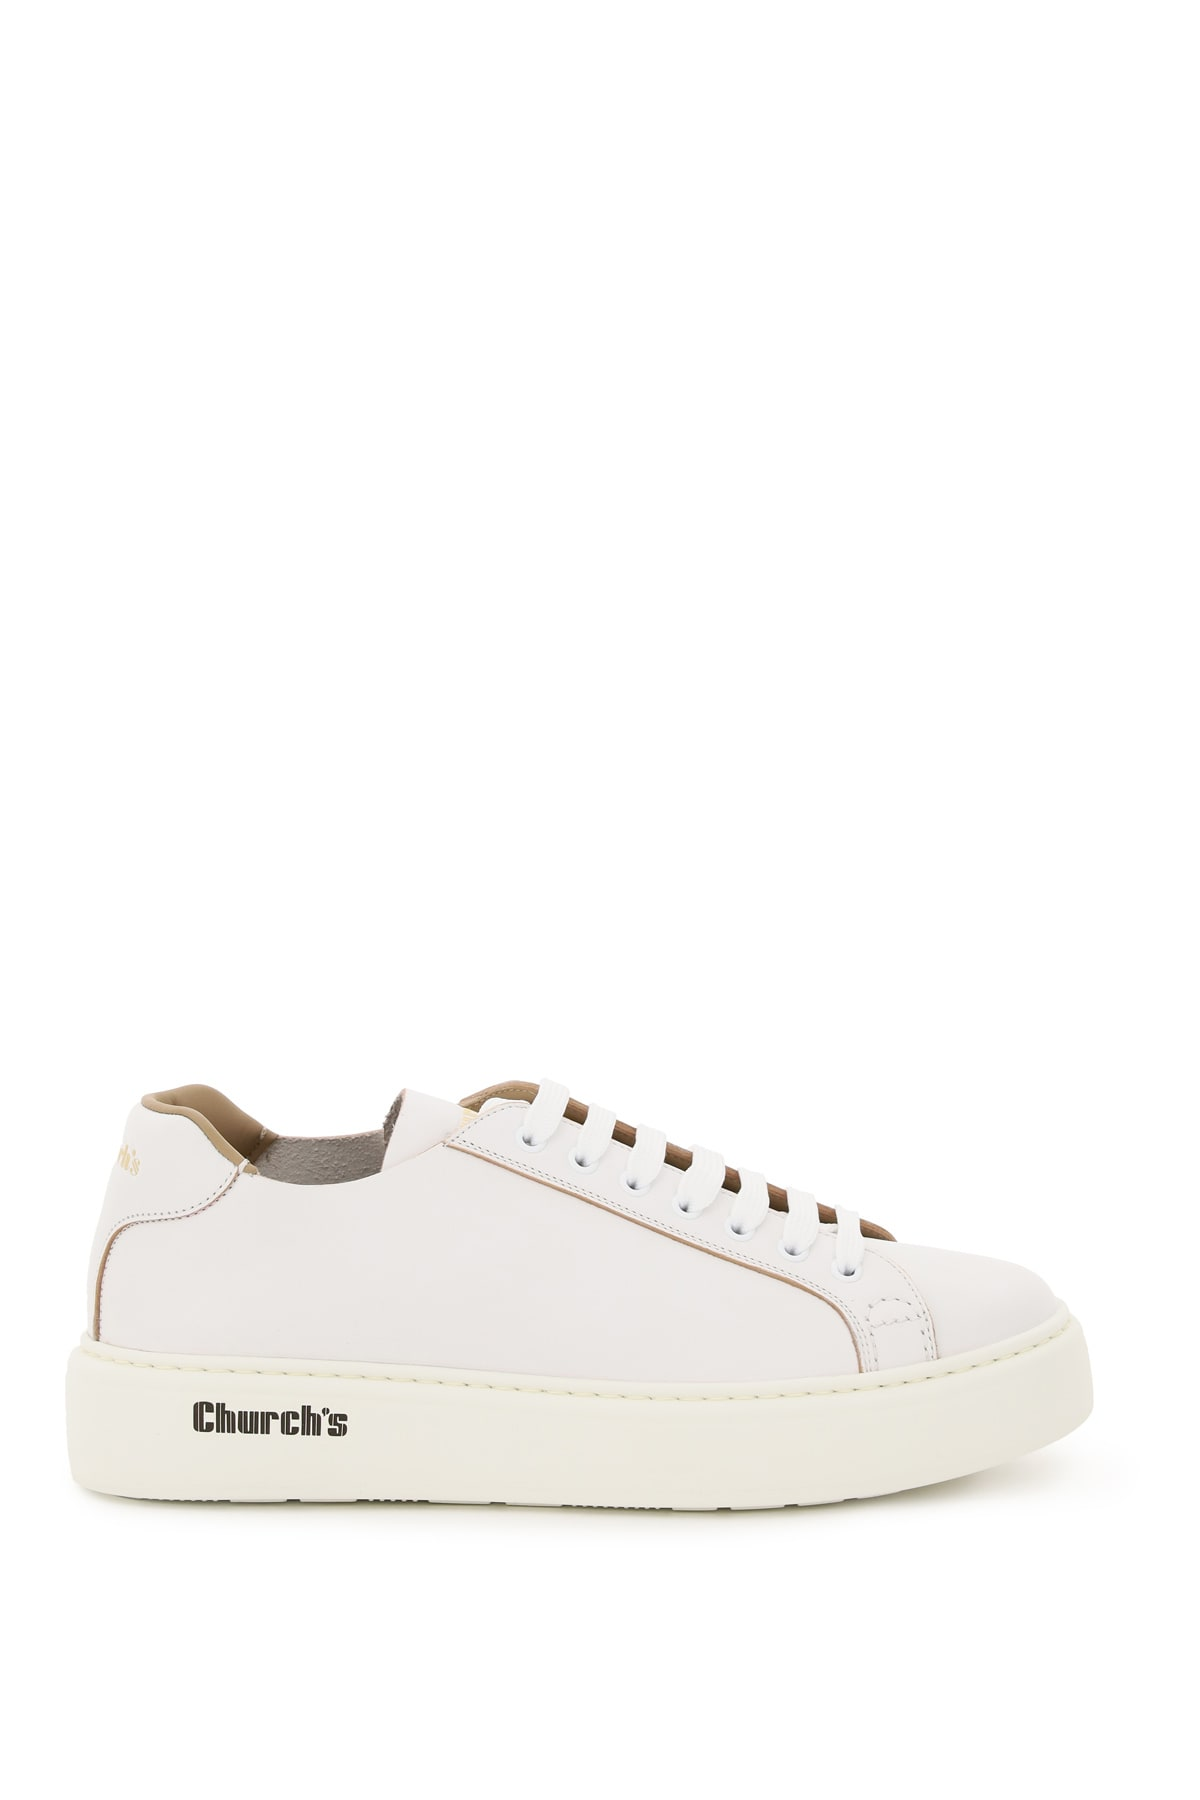 Church's Sneakers MATCH 1 LEATHER SNEAKERS